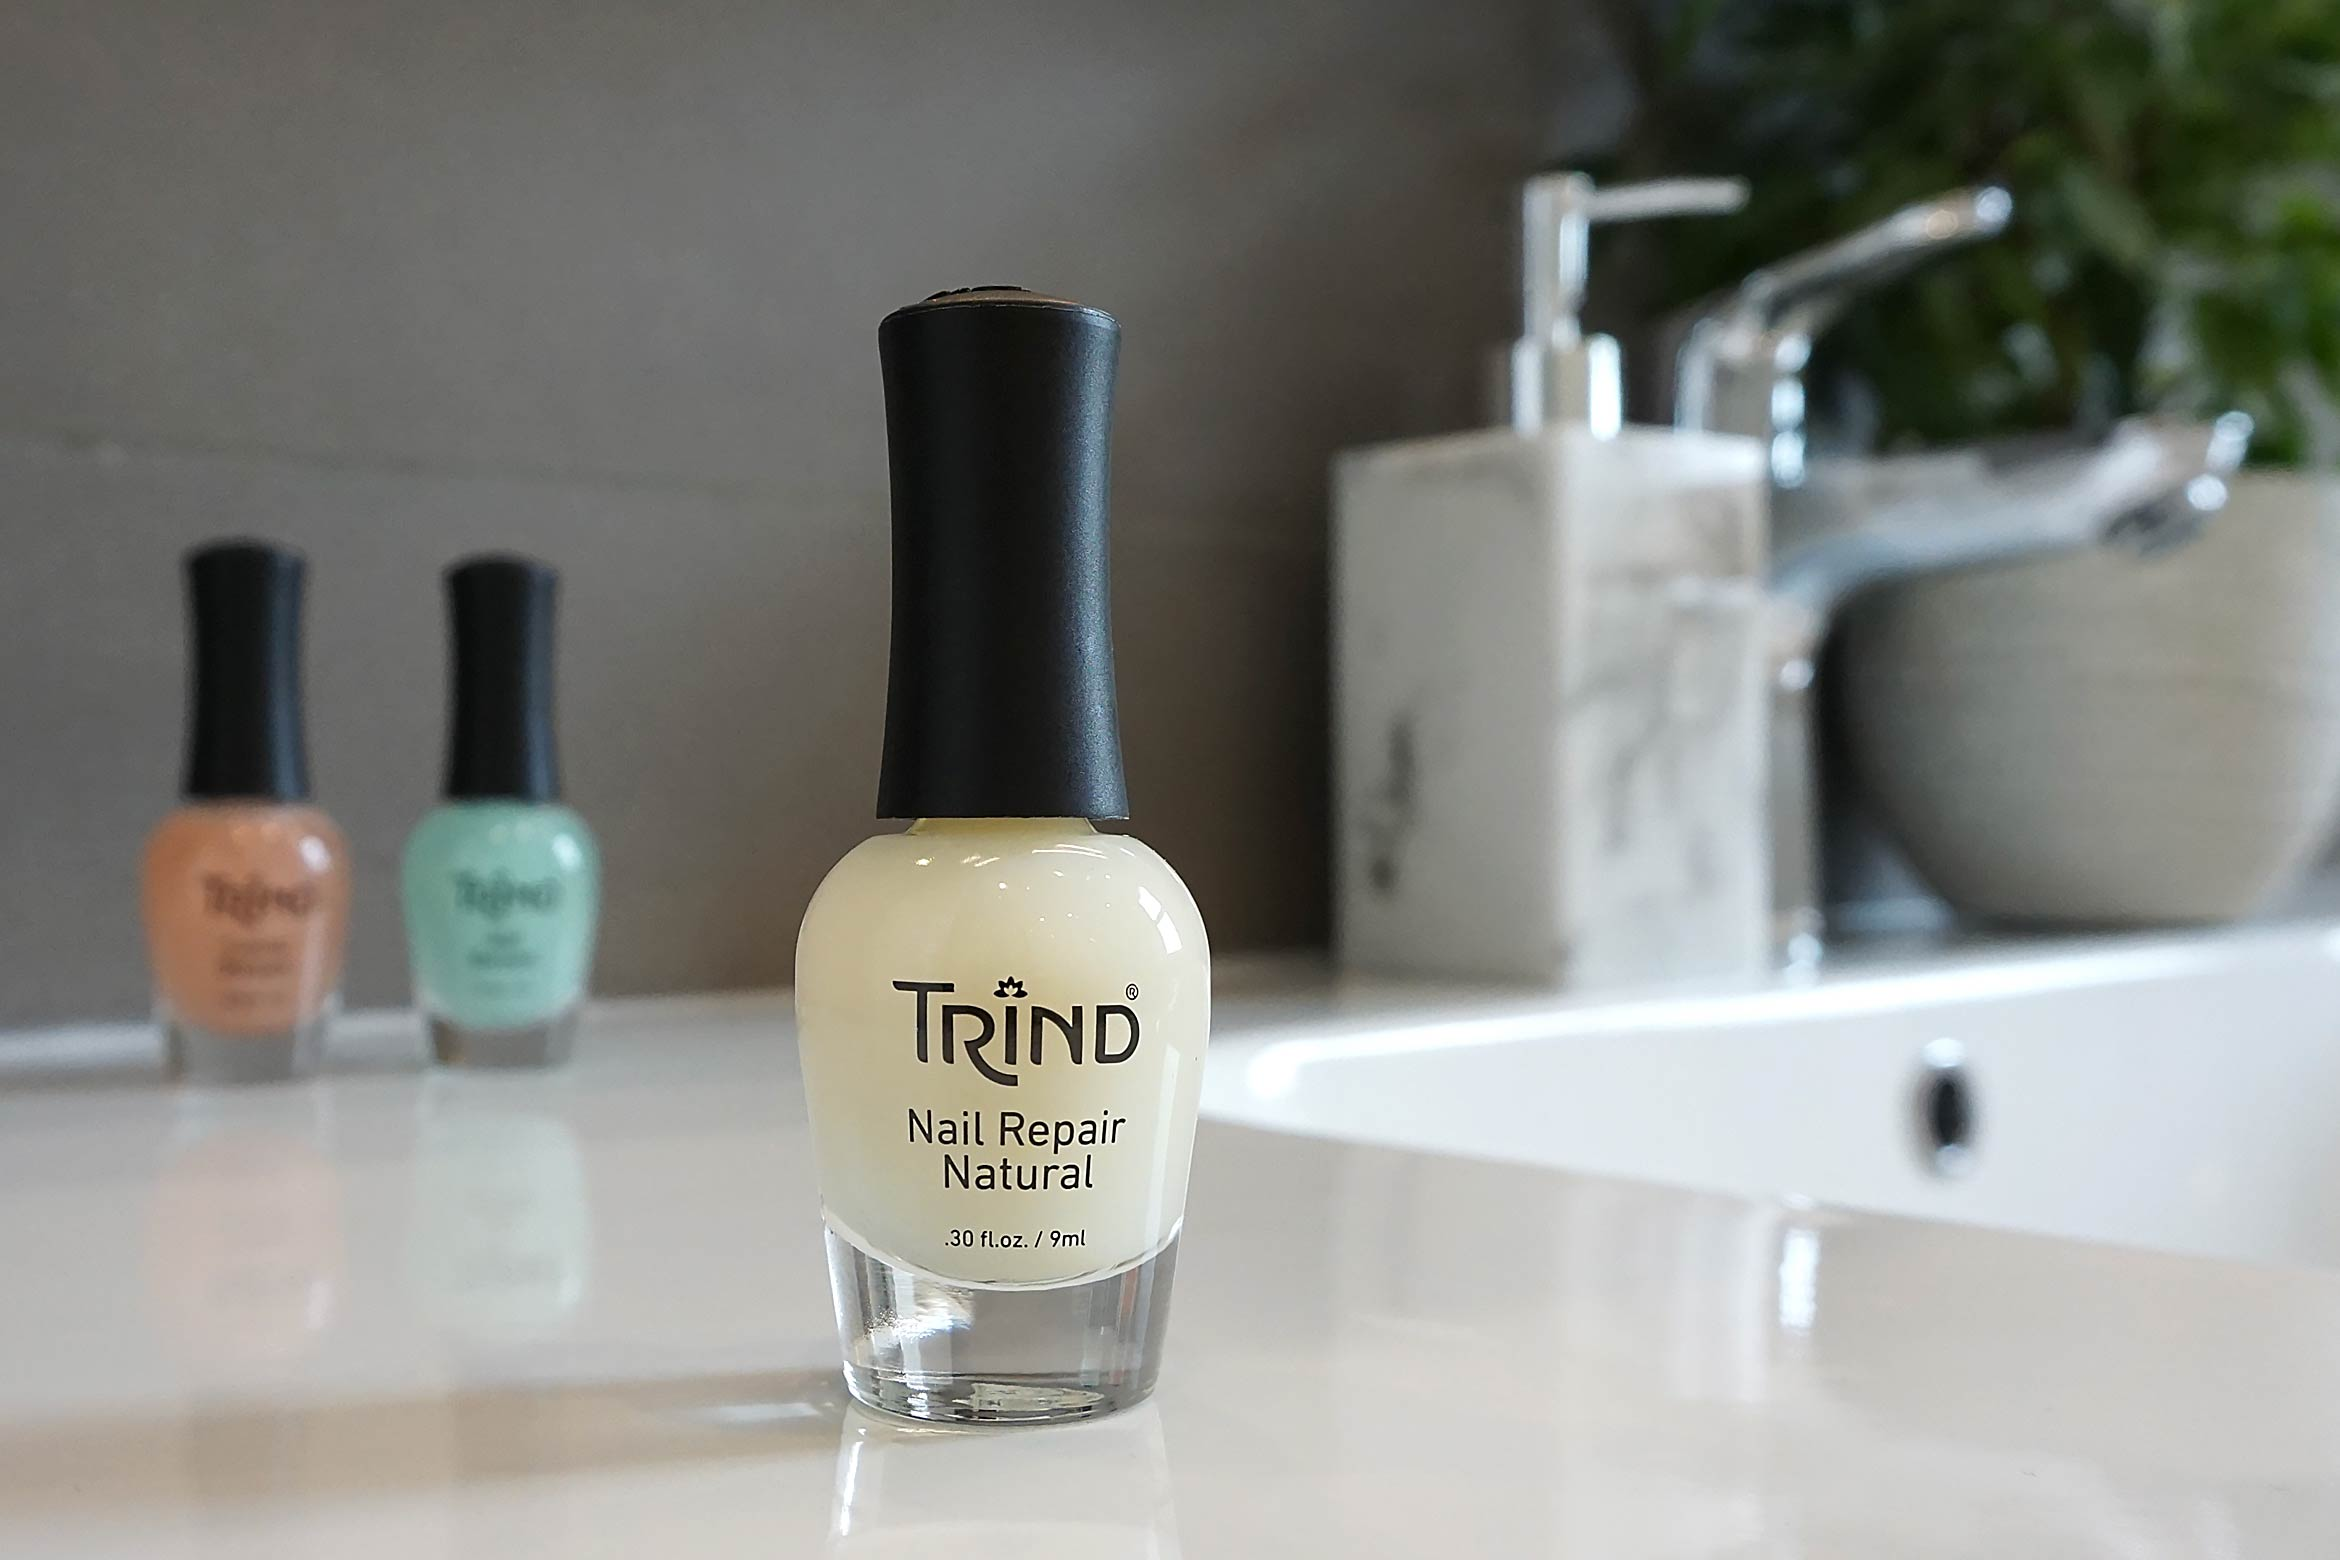 trind nail repair natural review